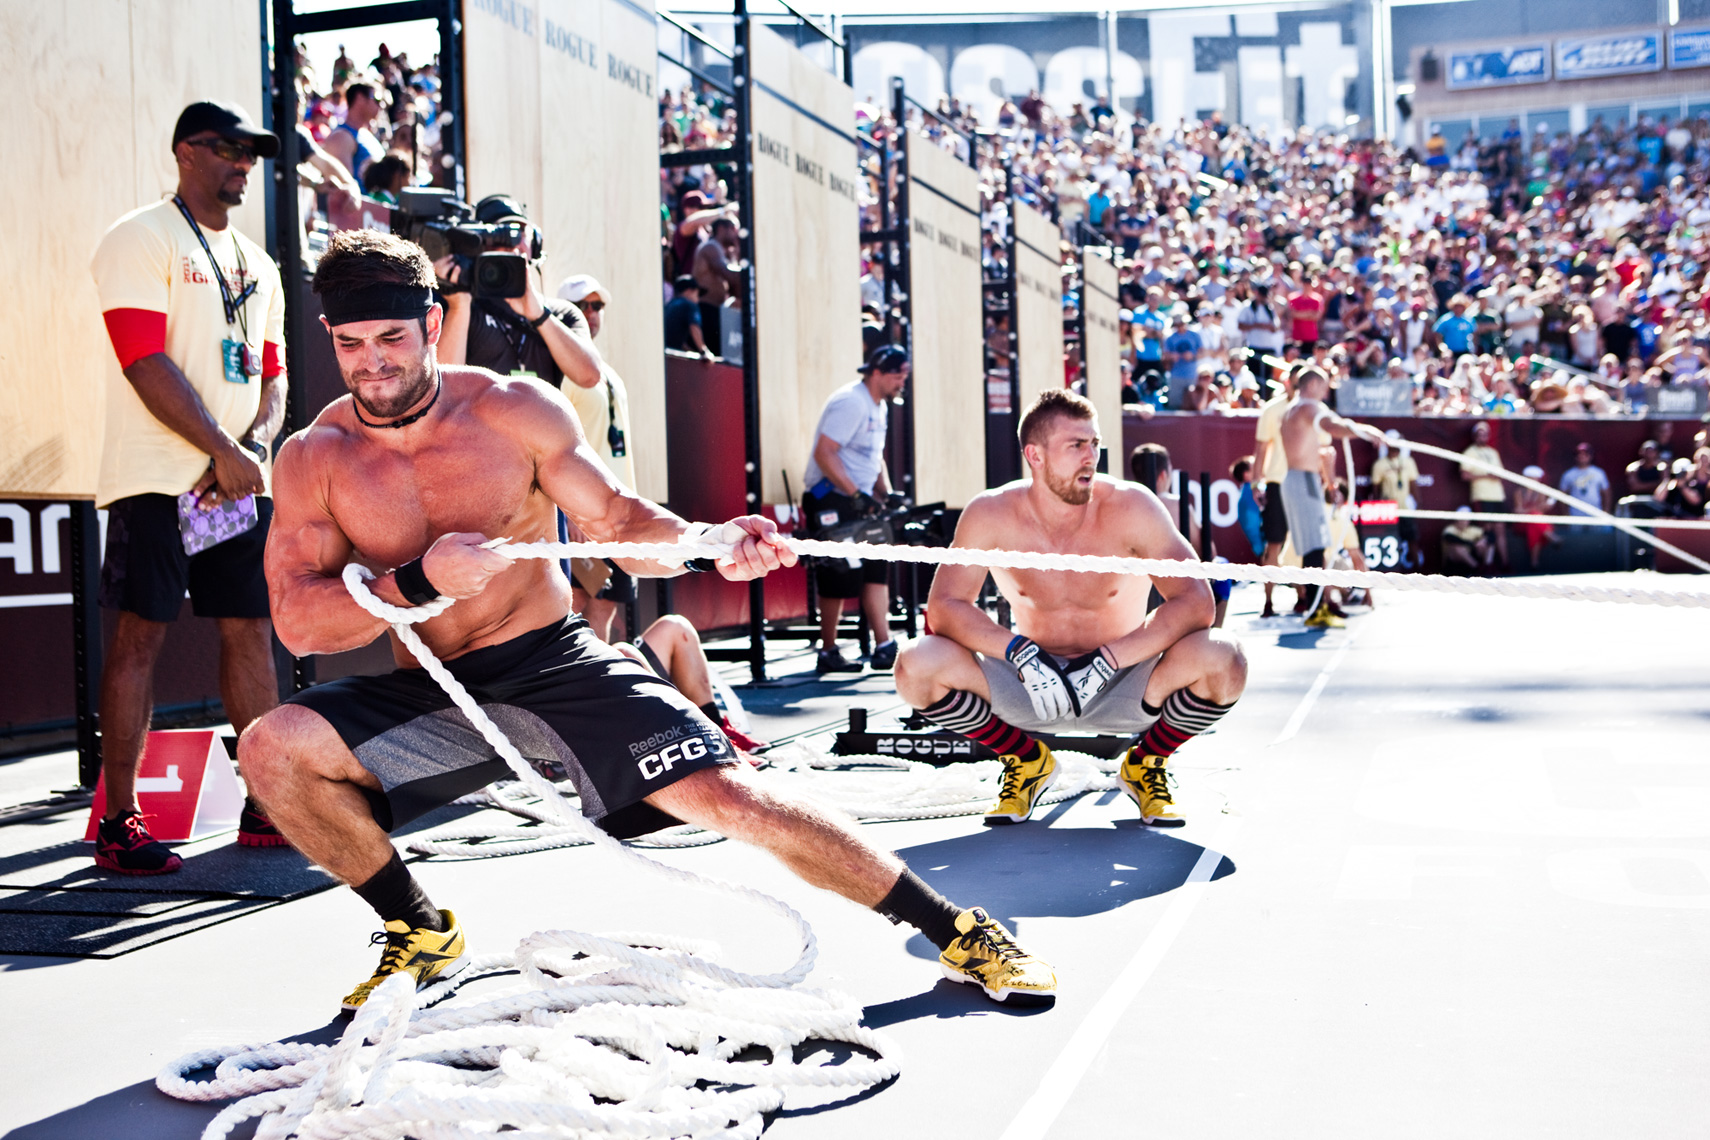 Los Angeles Sports Photography, Michael Brian, athlete, Rich Froning, Fittest Man on Earth, Reebok Crossfit Games Champion, sled pull, StubHub Center